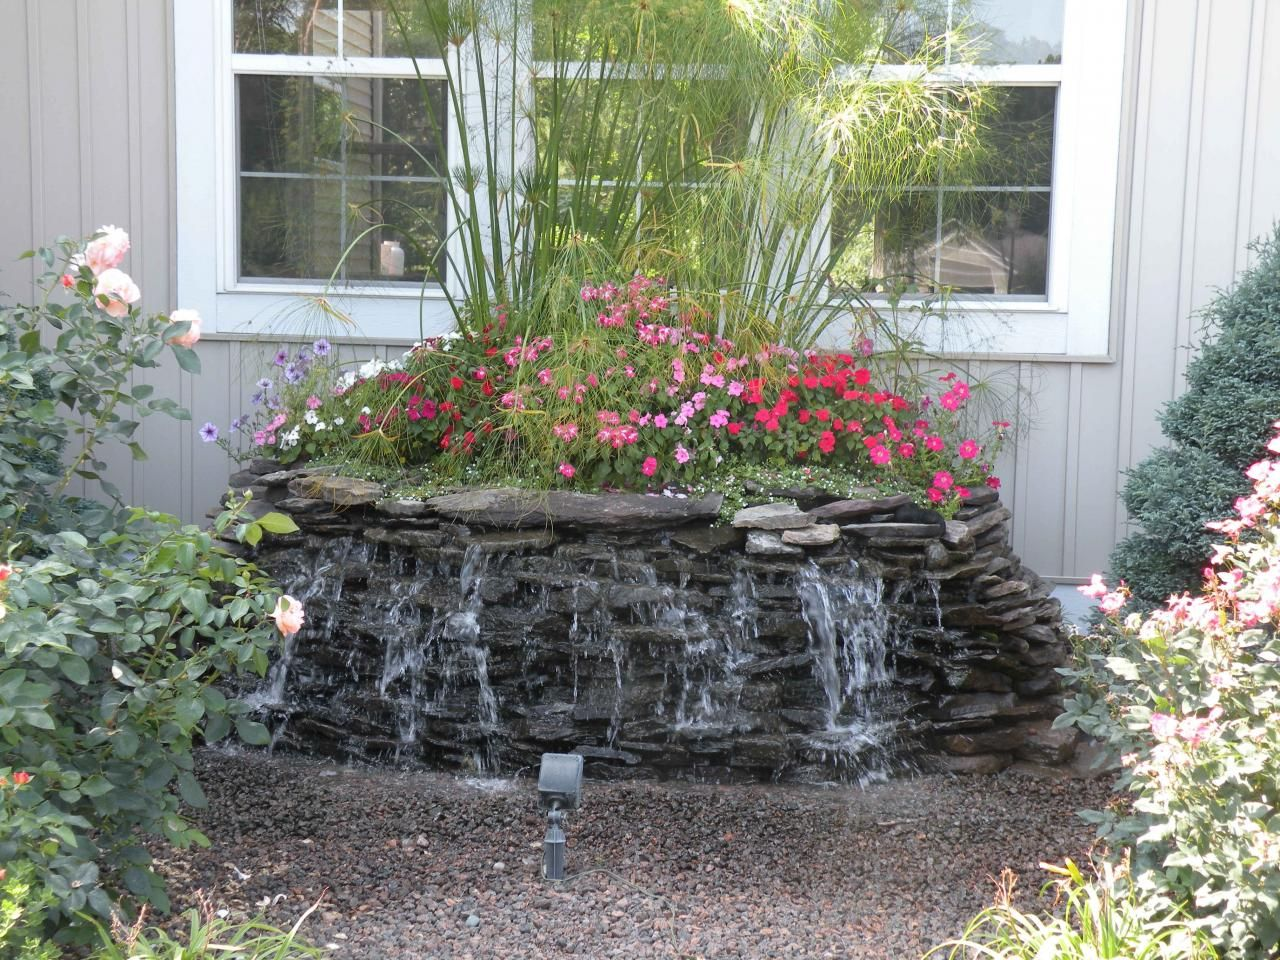 Small water fountains for gardens garden decor lovely for Garden water fountains